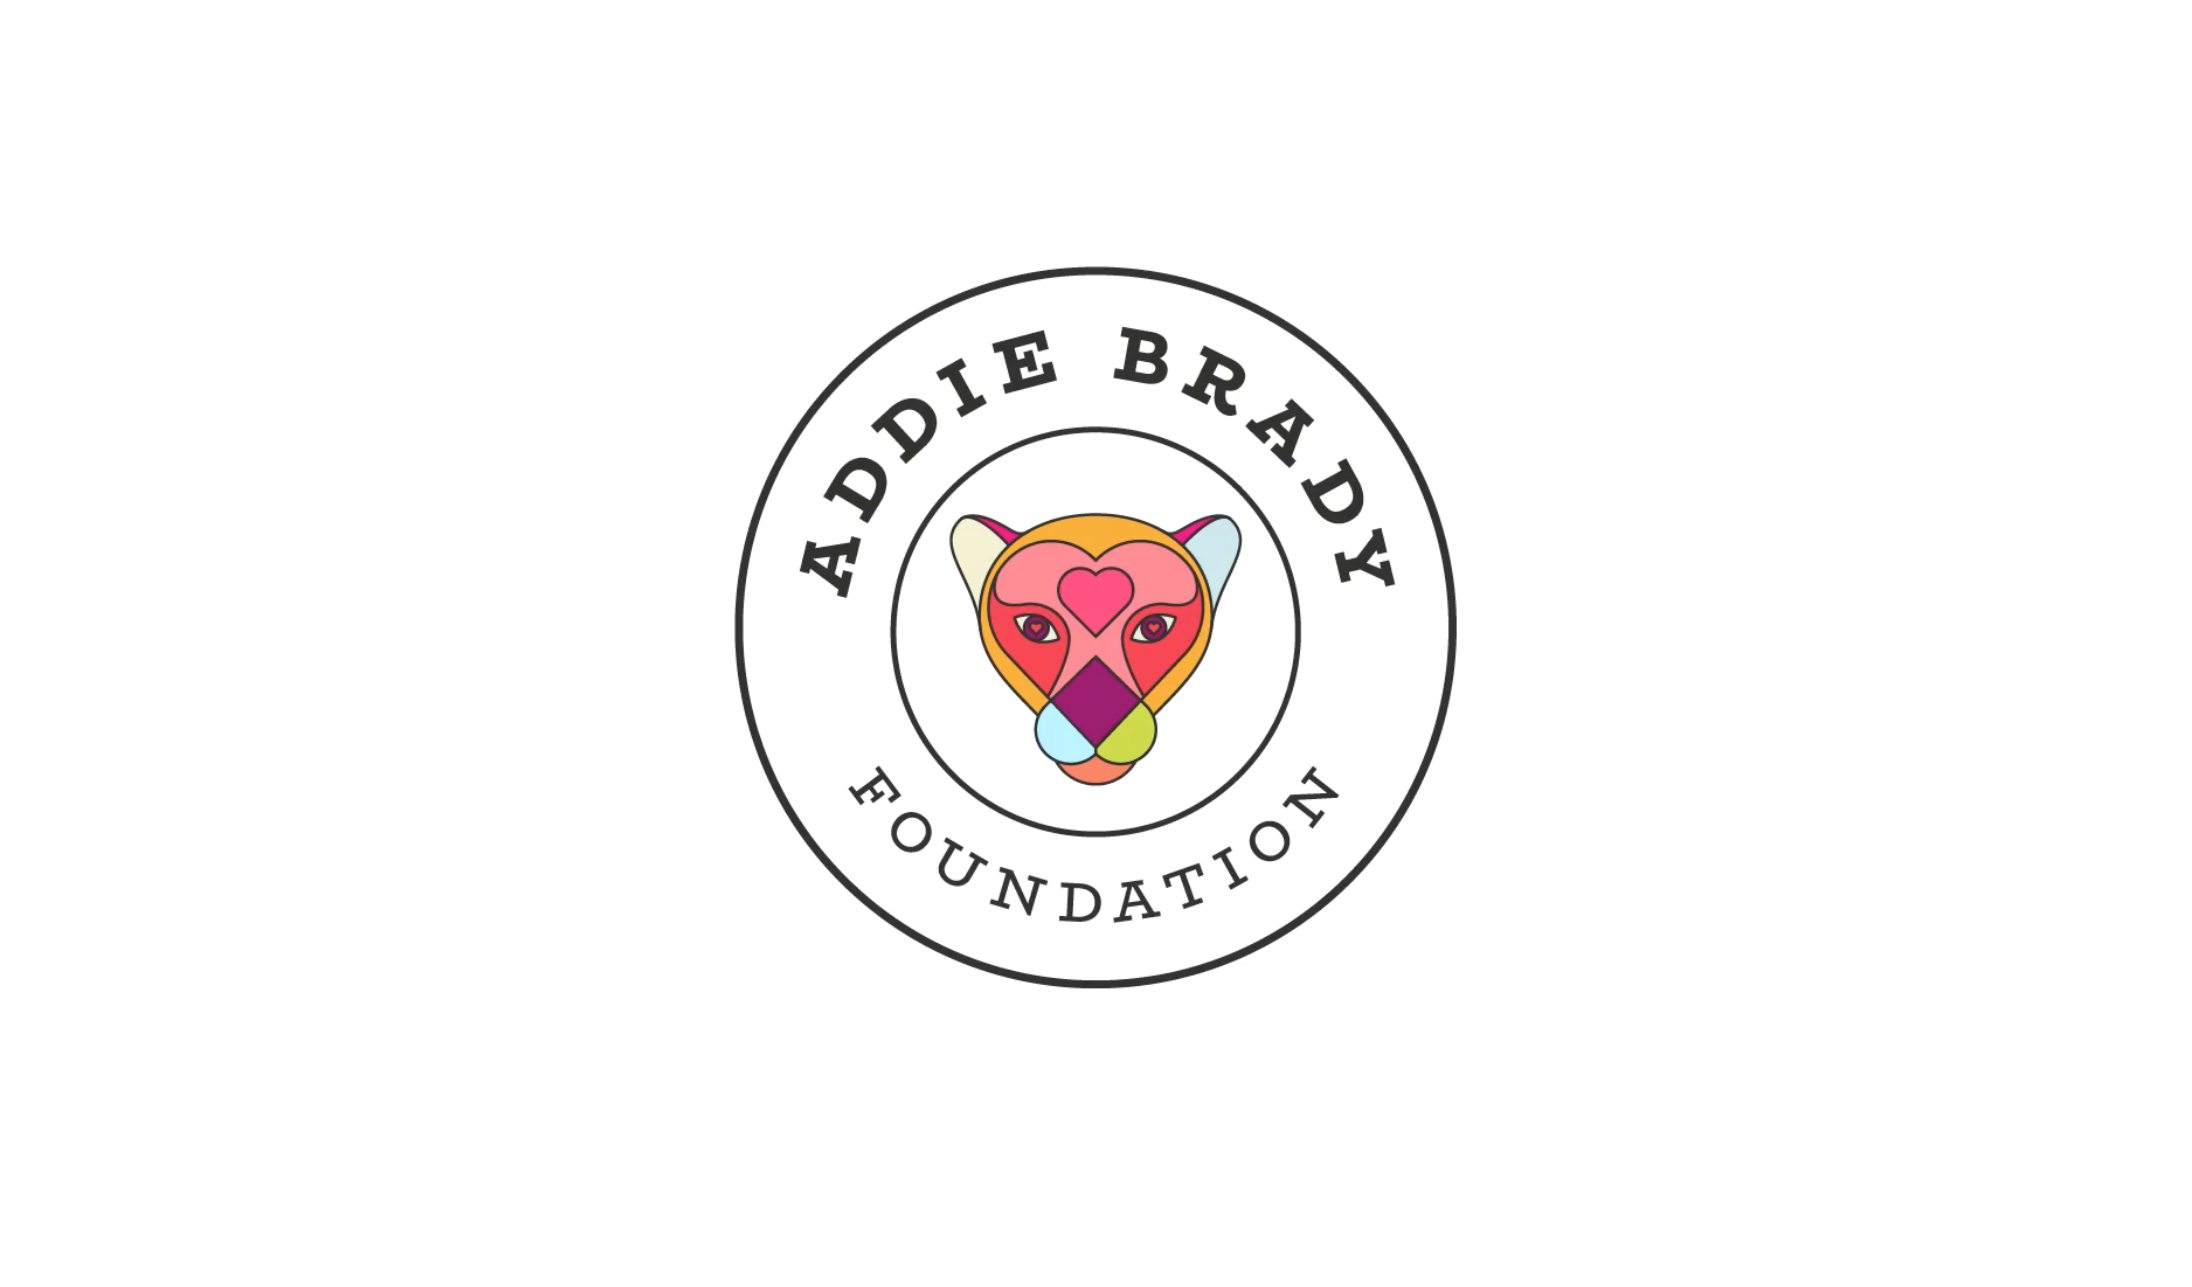 Sportsology Research Academy: Supporting the Addie Brady Foundation